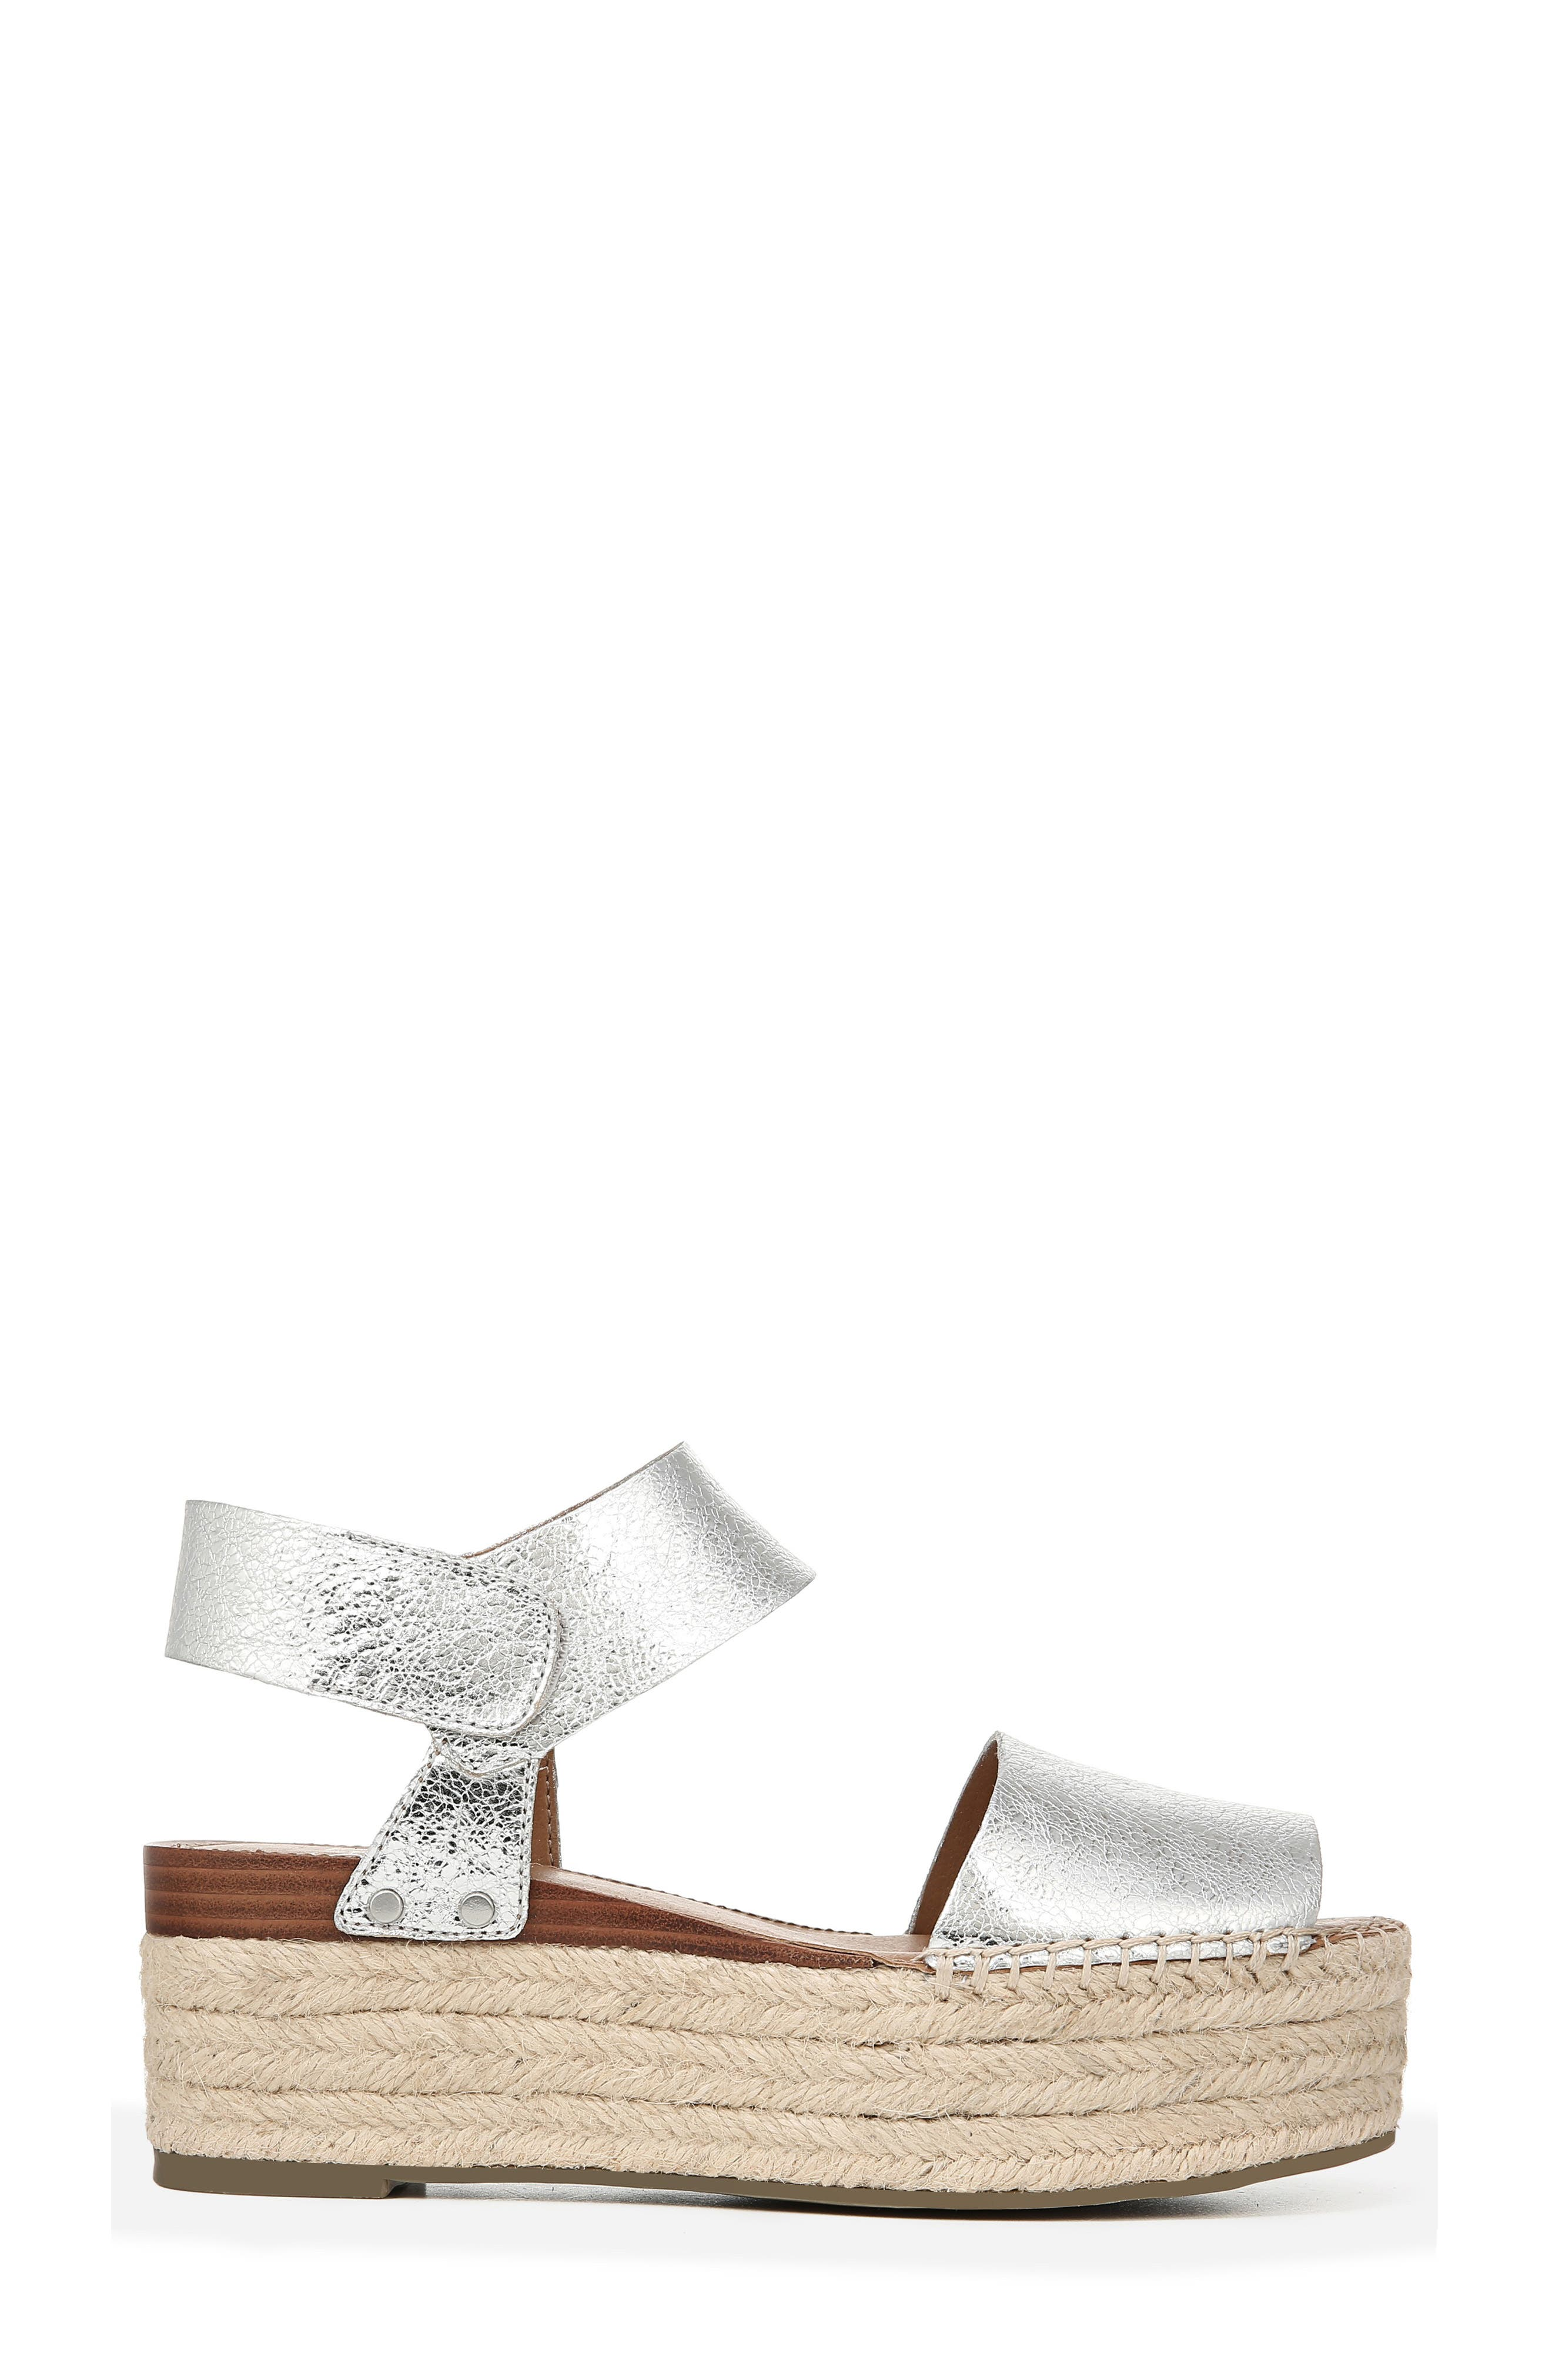 SARTO BY FRANCO SARTO, Leo Platform Espadrille Sandal, Alternate thumbnail 3, color, SILVER LEATHER